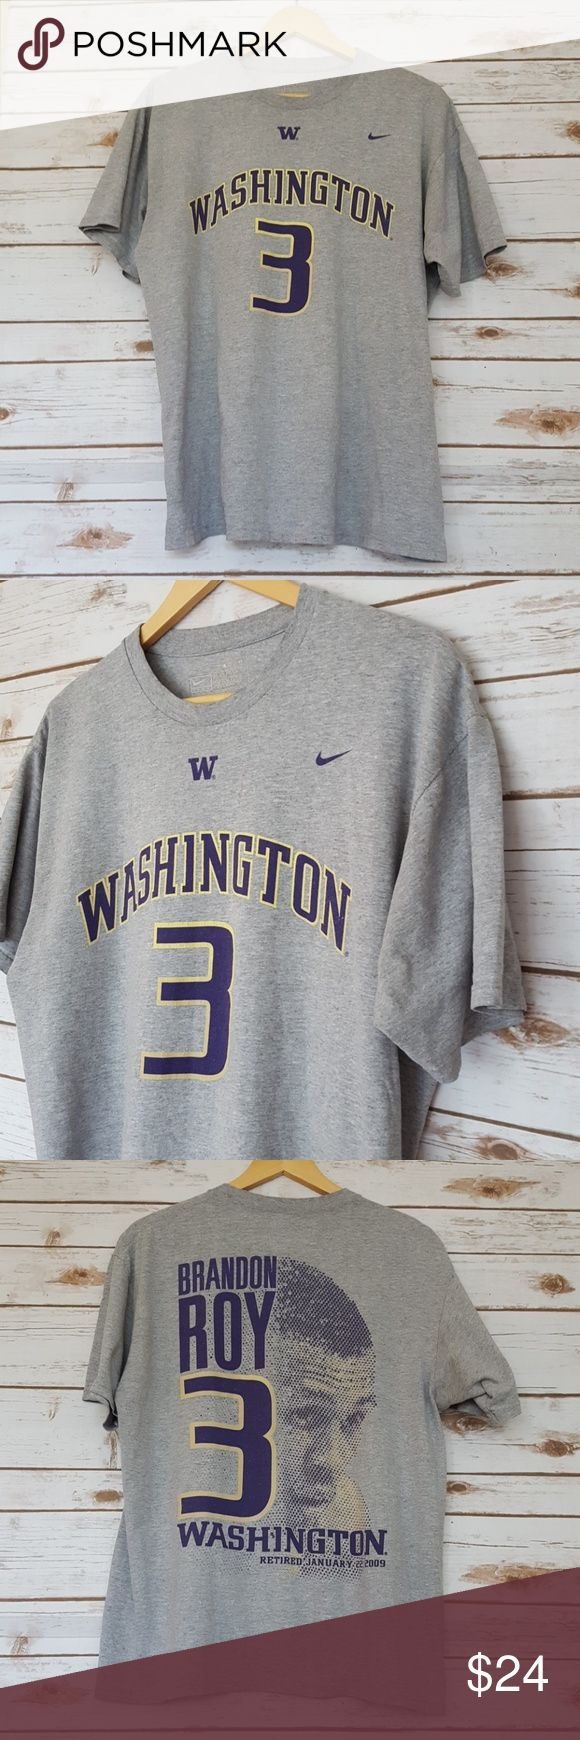 """washington huskies brandon roy tshirt size M Measurements lying flat:  Chest: 22"""" Length:27"""" 100% cotton, 12% rayon Smoke-free home  -Prices firm on items under $10.  -No trades, please.  Thank you for shopping my closet, it means a lot to me! Nike Shirts Tees - Short Sleeve"""